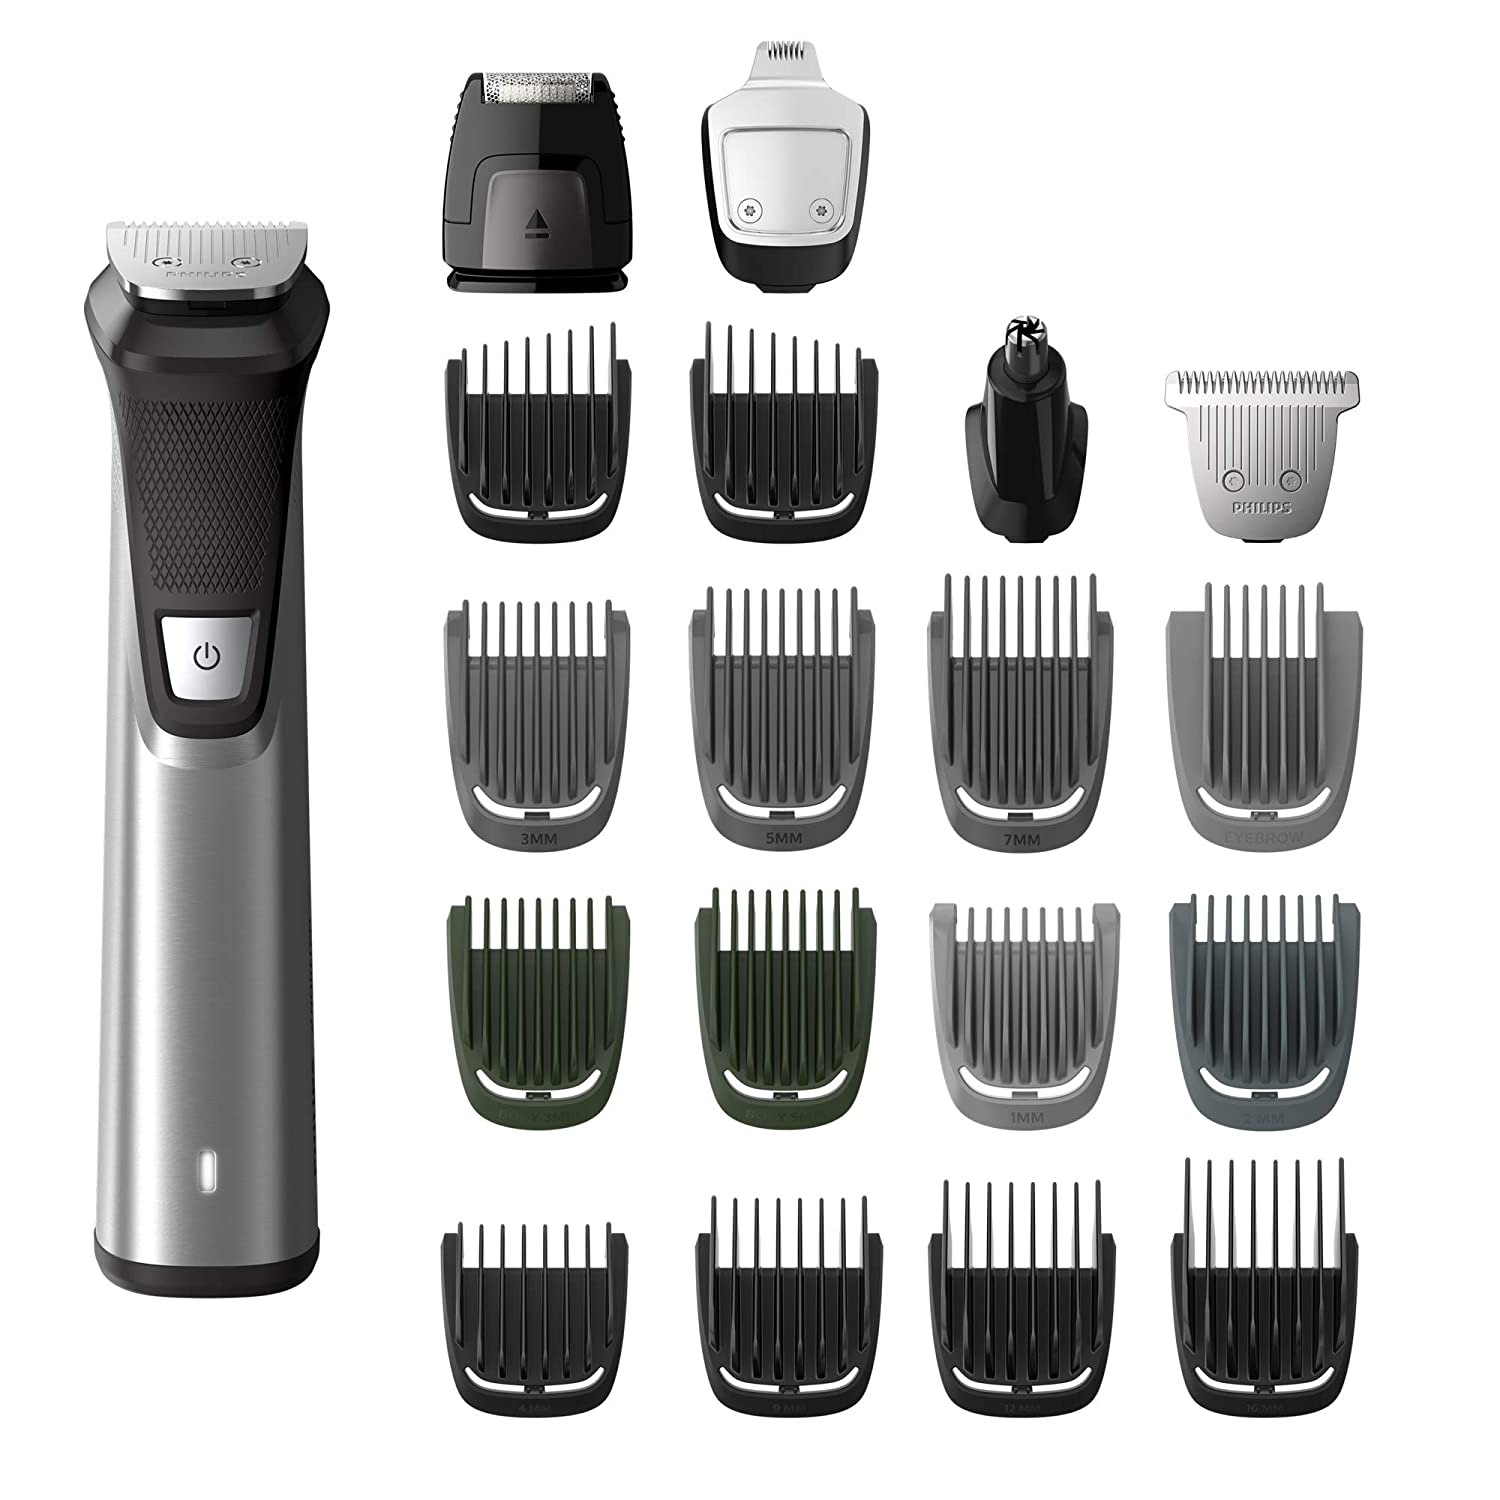 Philips Norelco Beard Trimmer 7000 Series